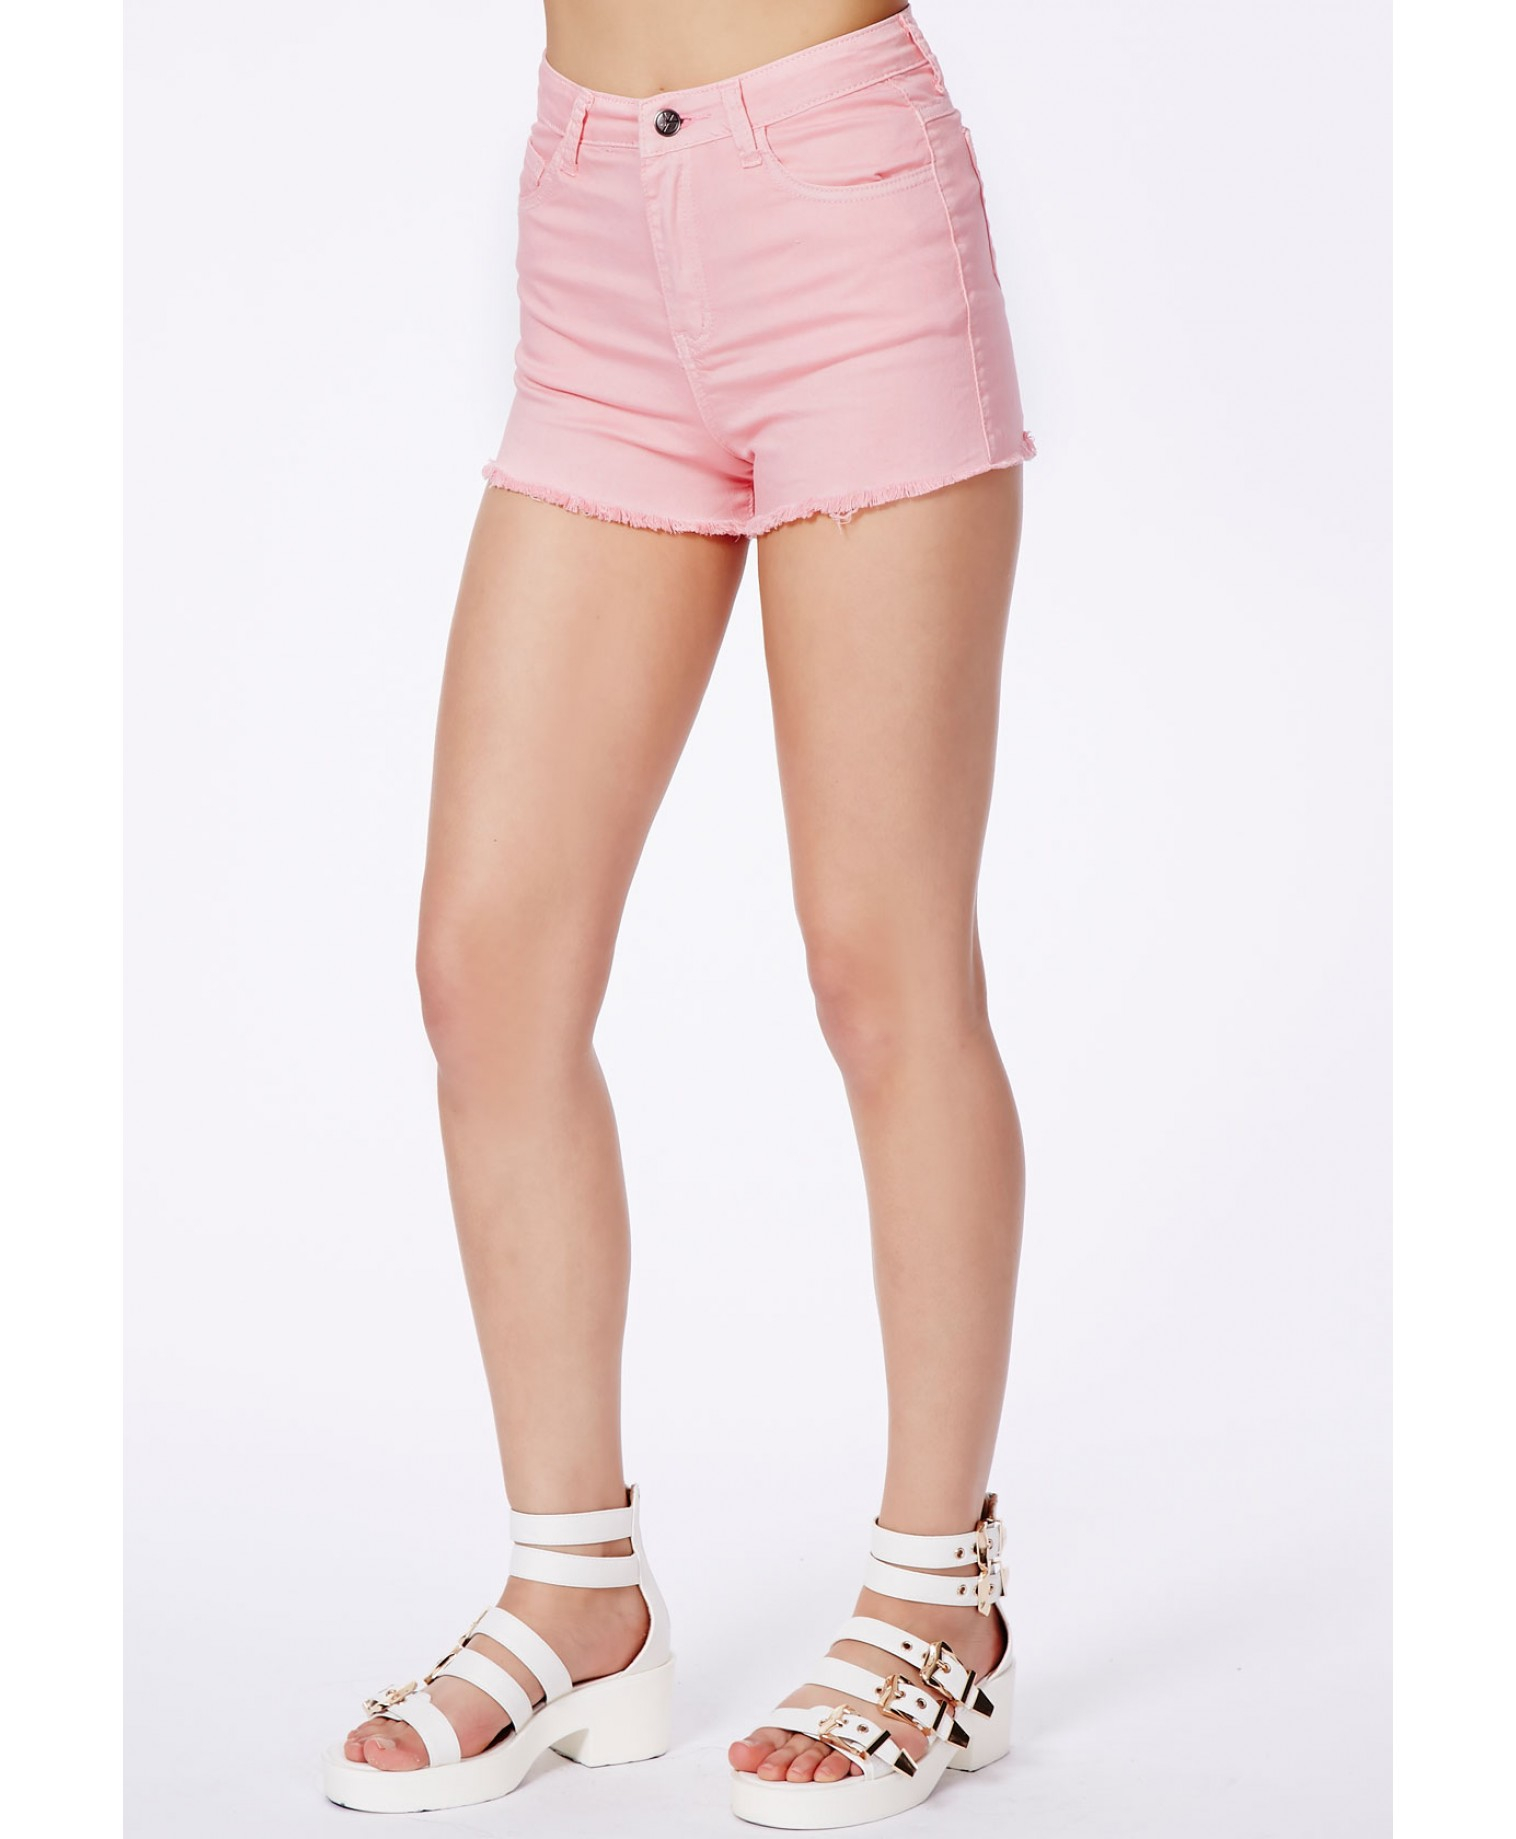 Missguided Linsa Baby Pink High Waisted Denim Shorts in Pink | Lyst